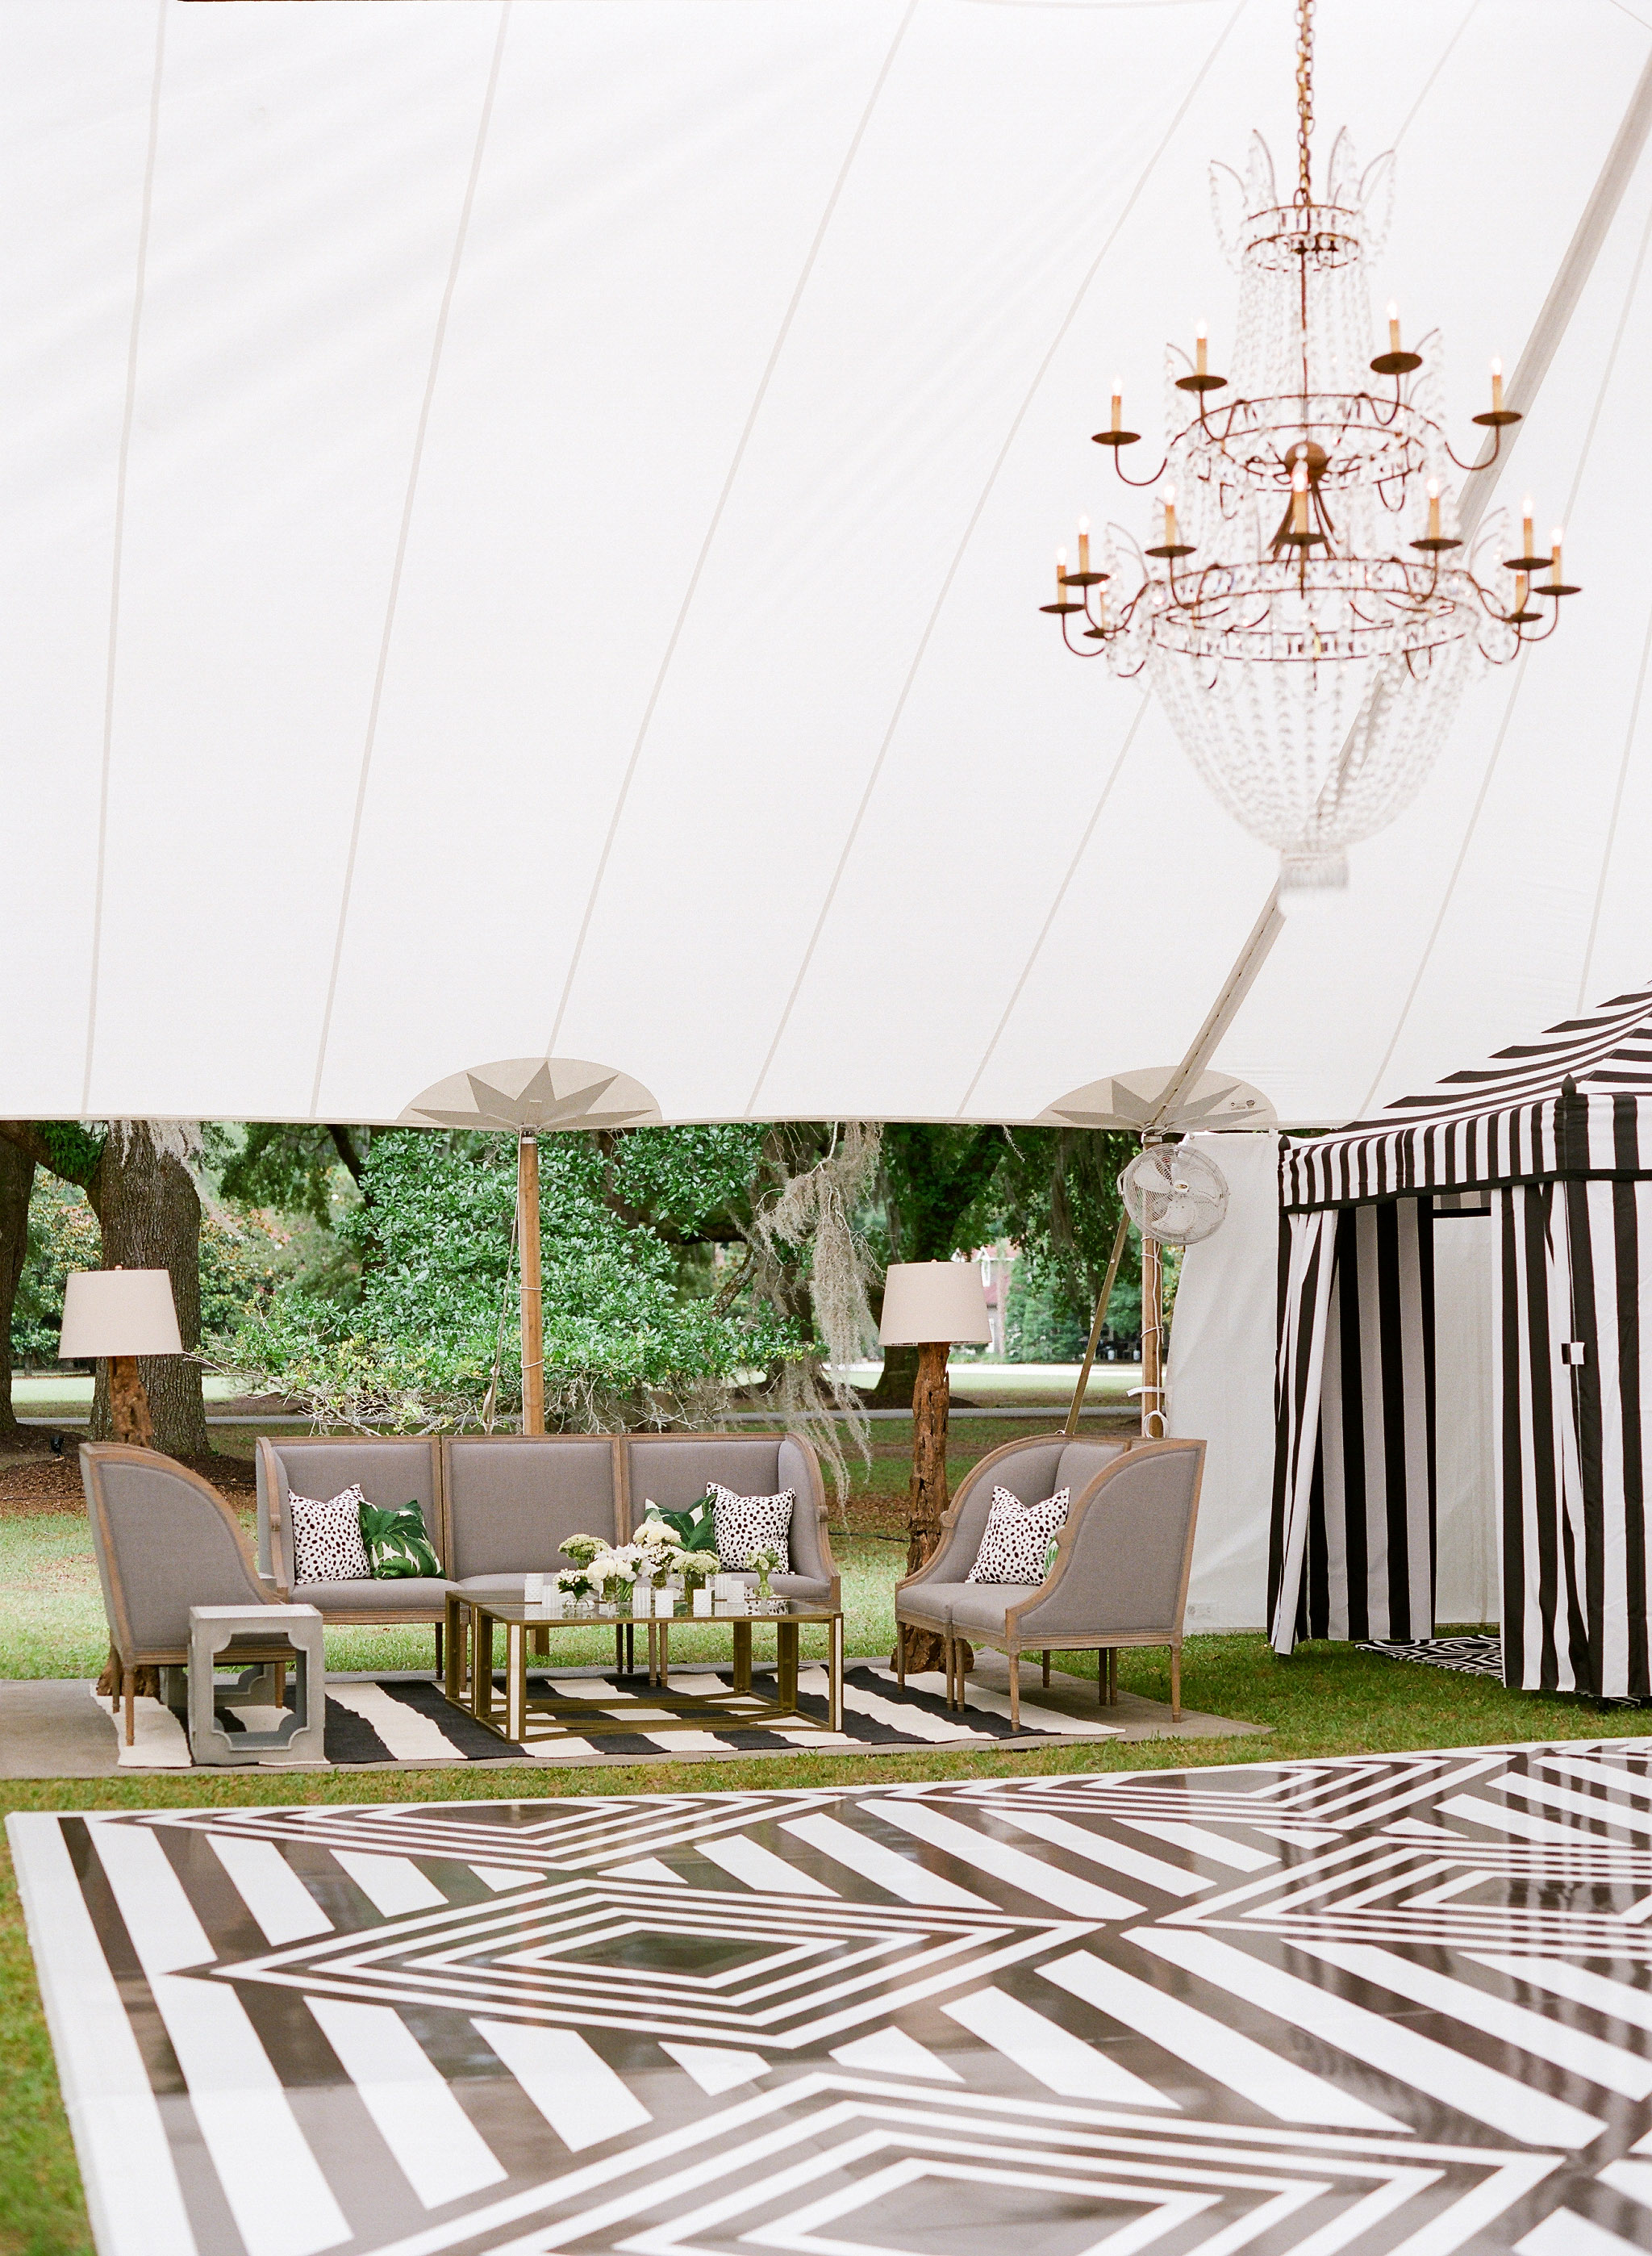 The Best Striped Wedding Ideas for Every Type of Celebration